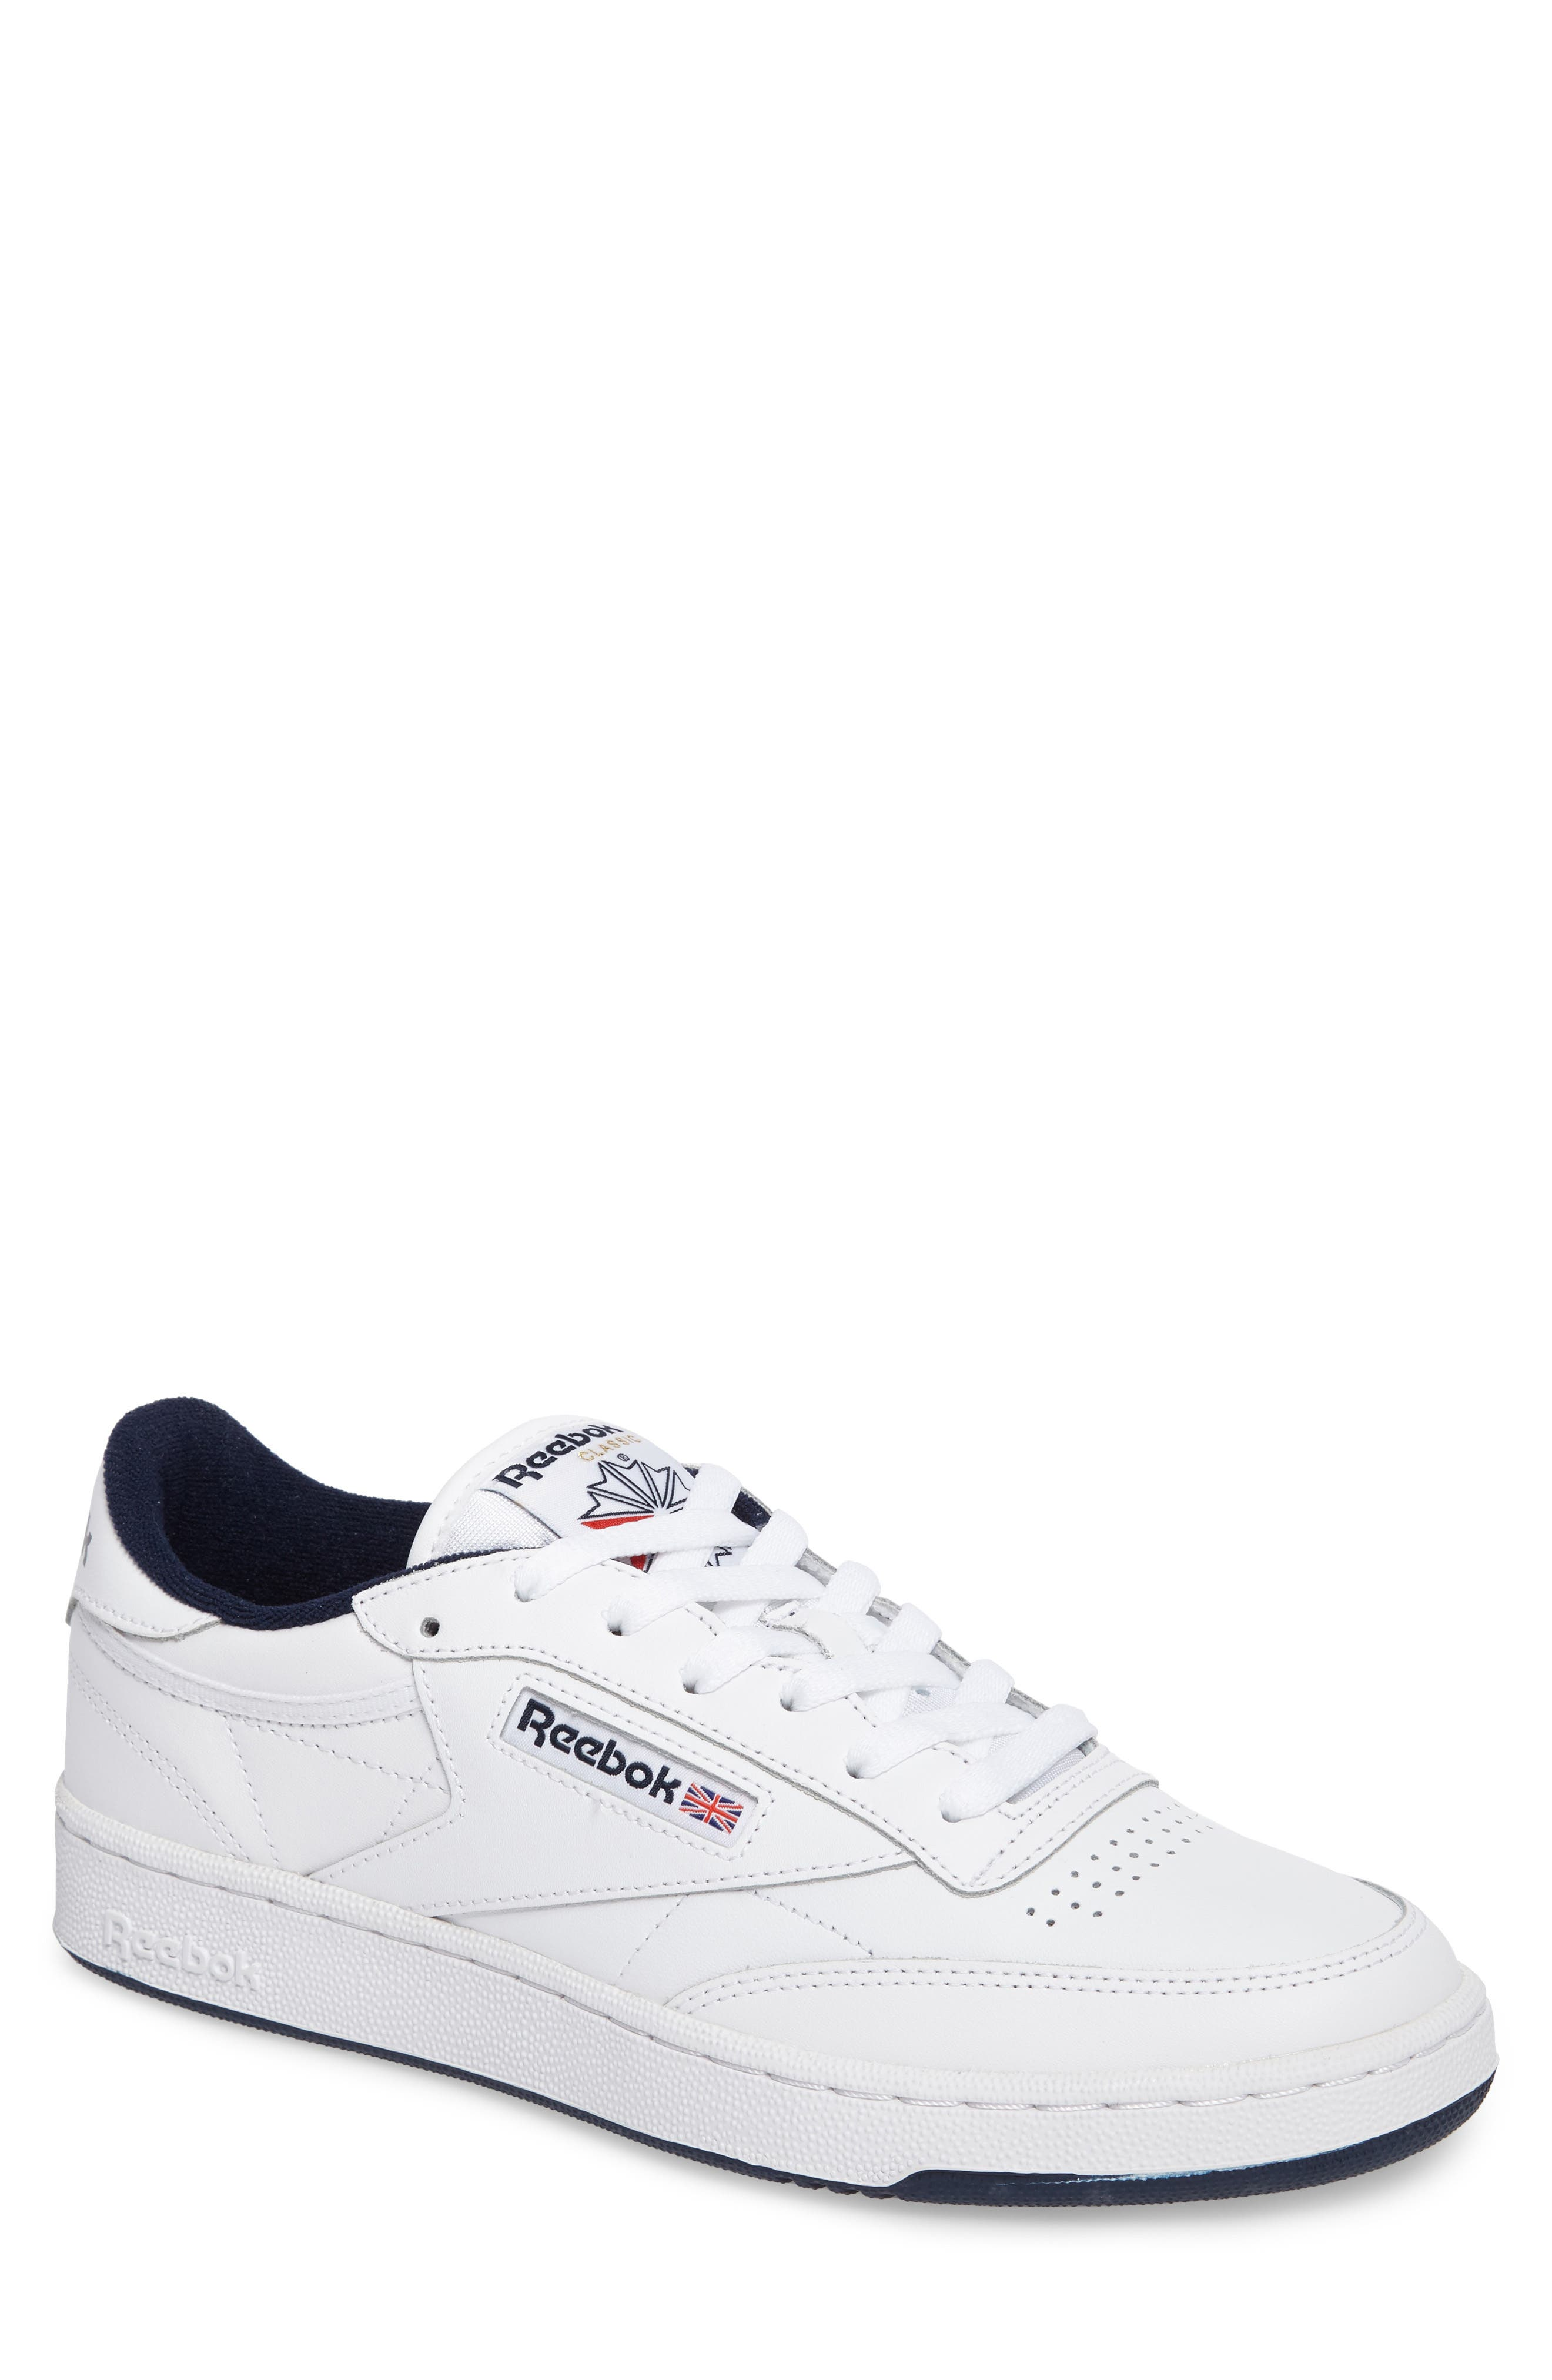 Club C 85 Sneaker,                         Main,                         color, WHITE/ NAVY